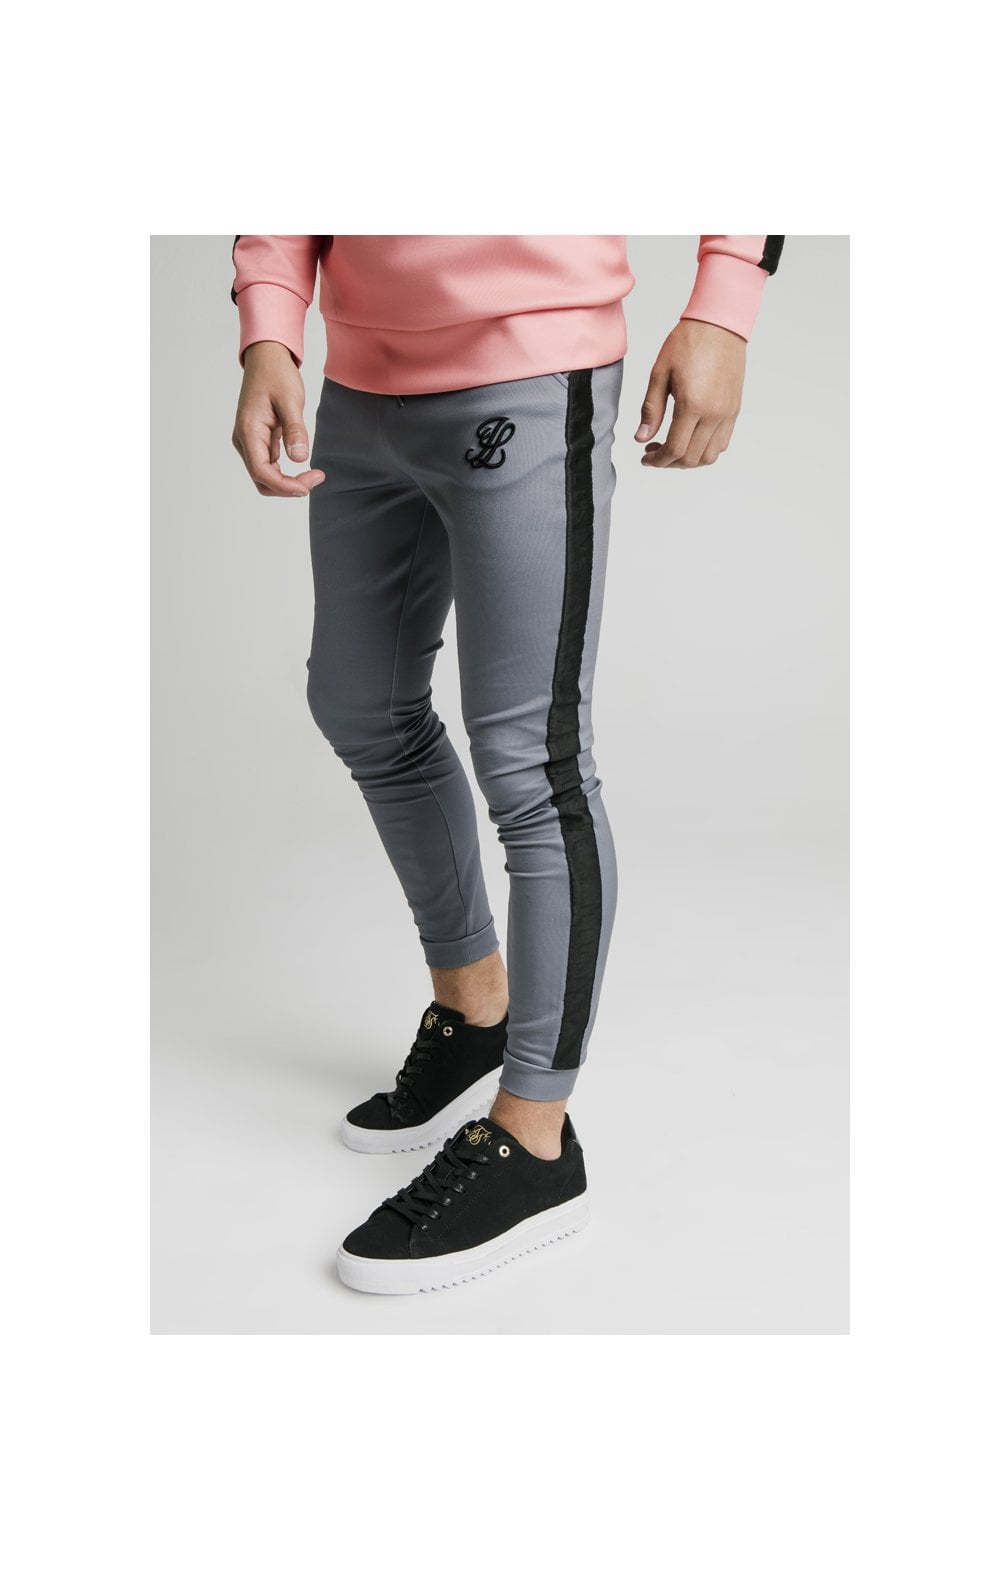 Load image into Gallery viewer, Illusive London Athlete Pants - Grey